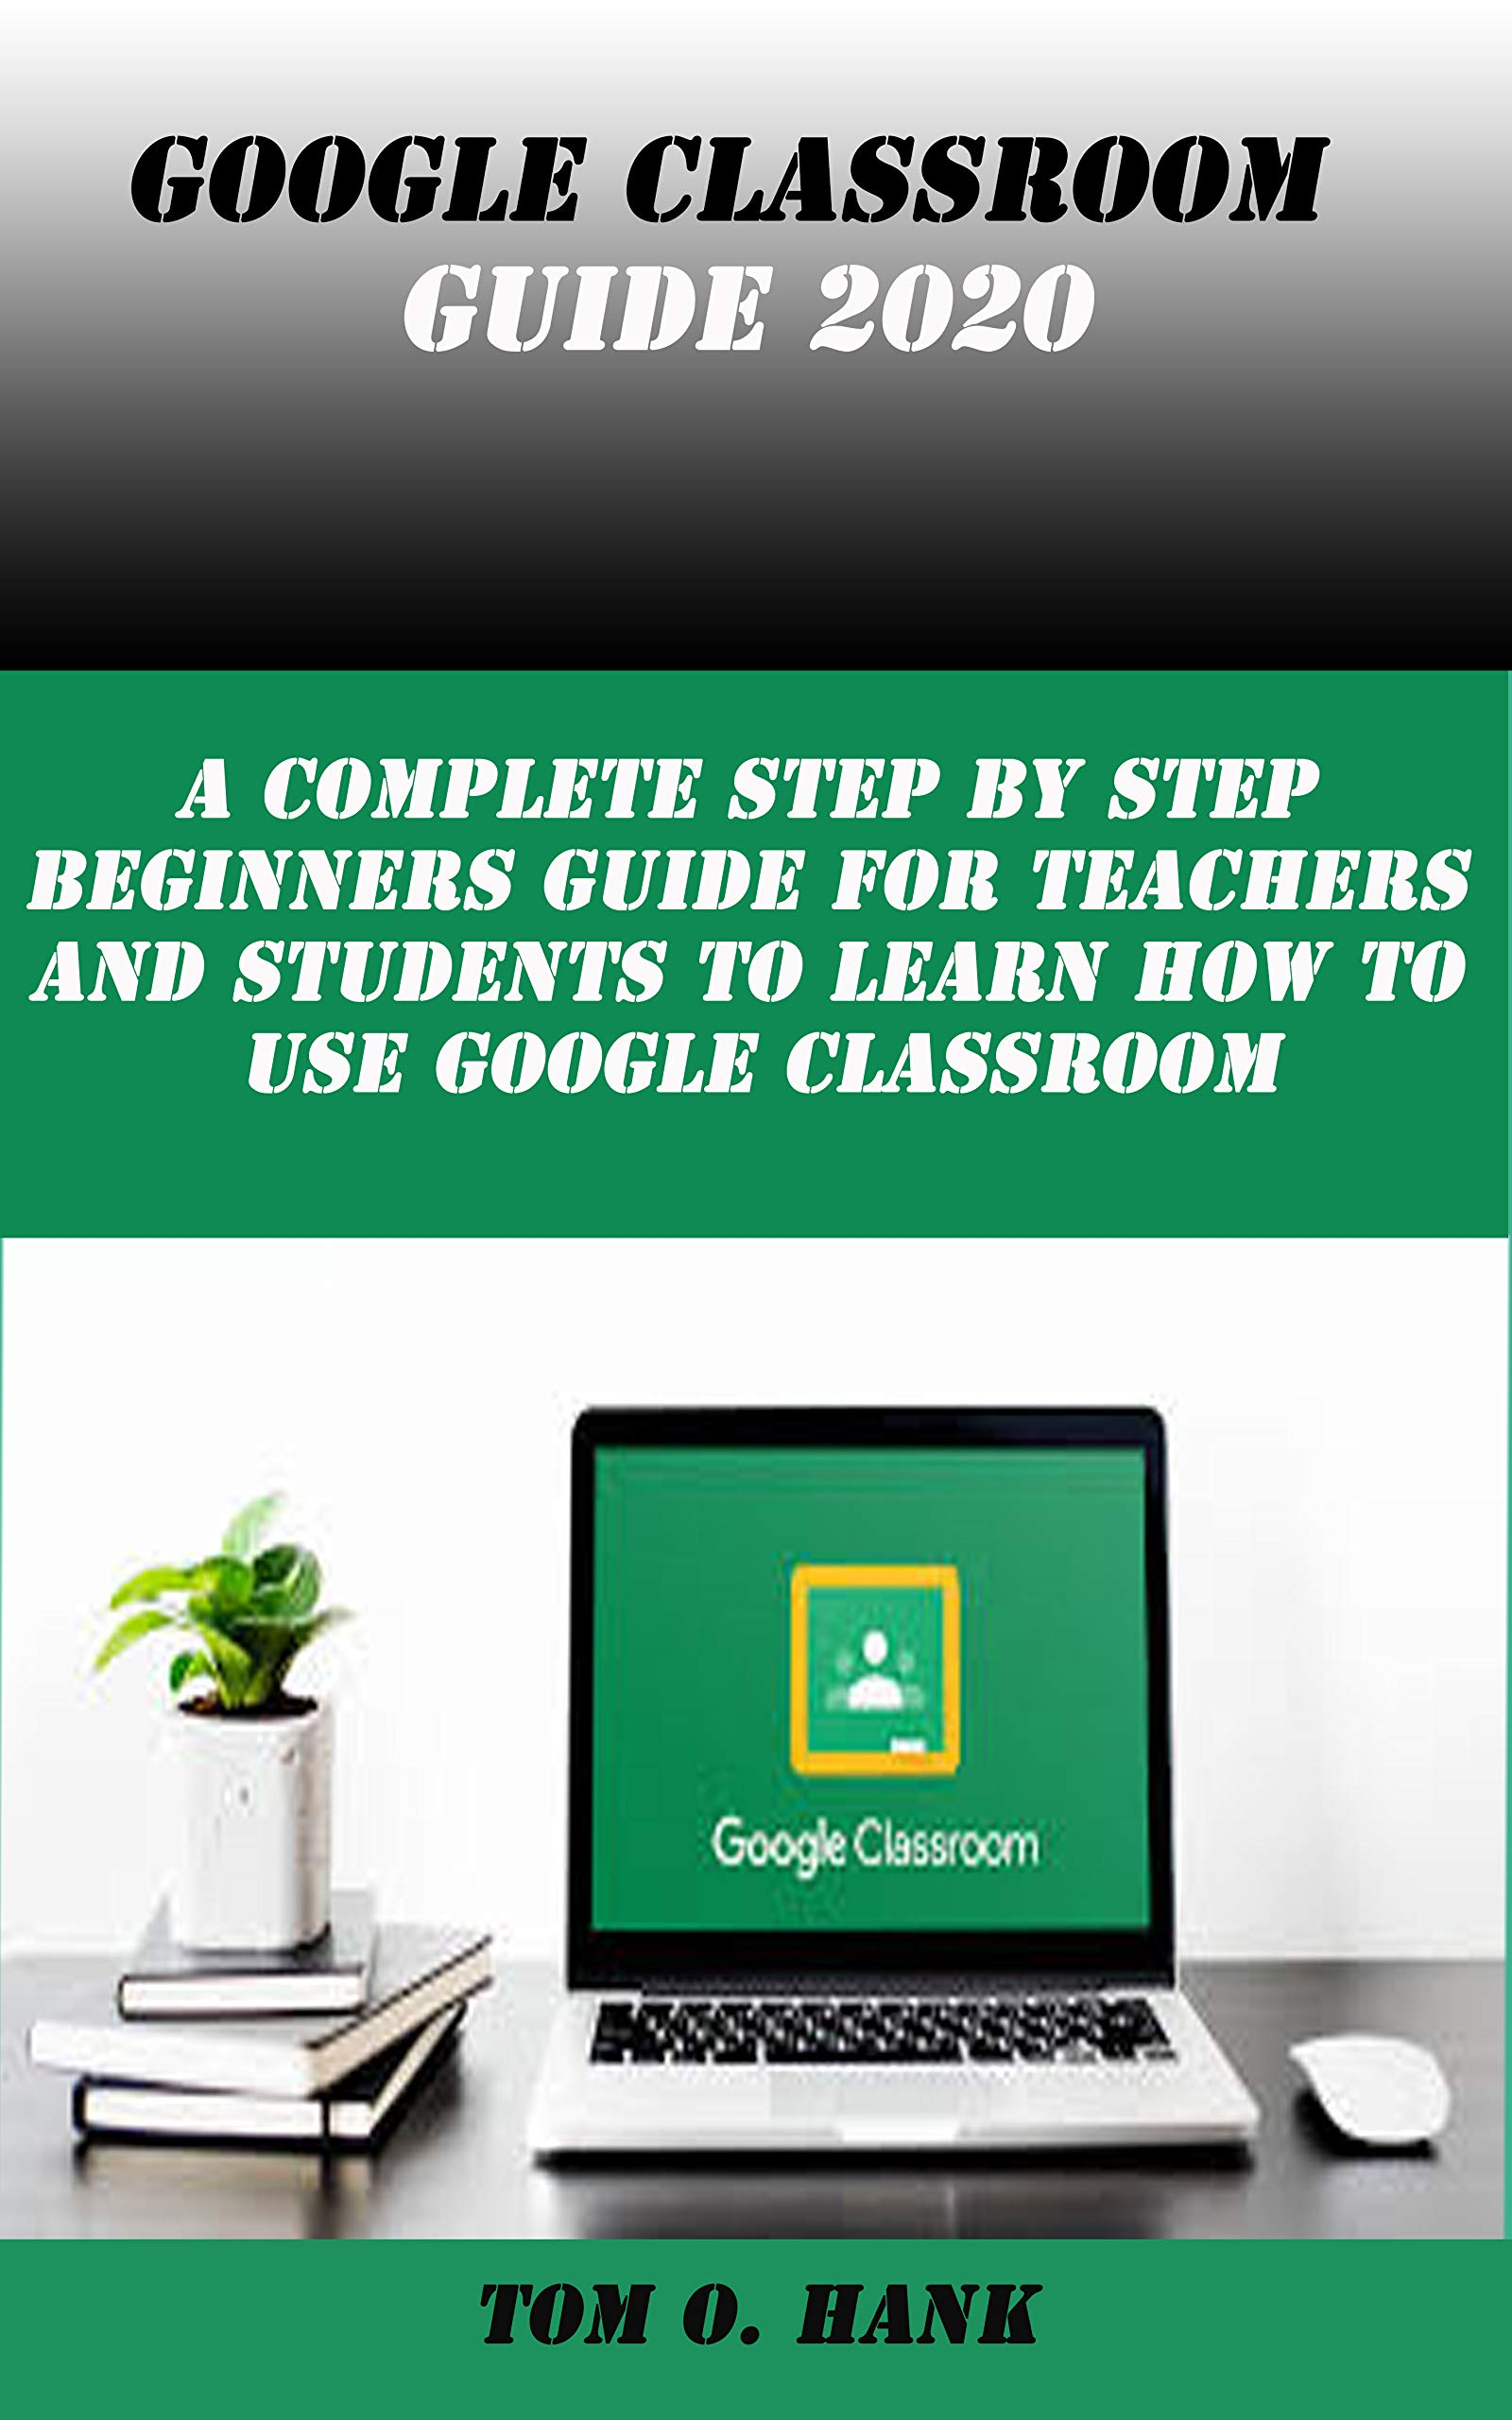 GOOGLE CLASSROOM GUIDE 2020: A complete step by step Beginners guide for Teachers and Students to learn how to use Google Classroom